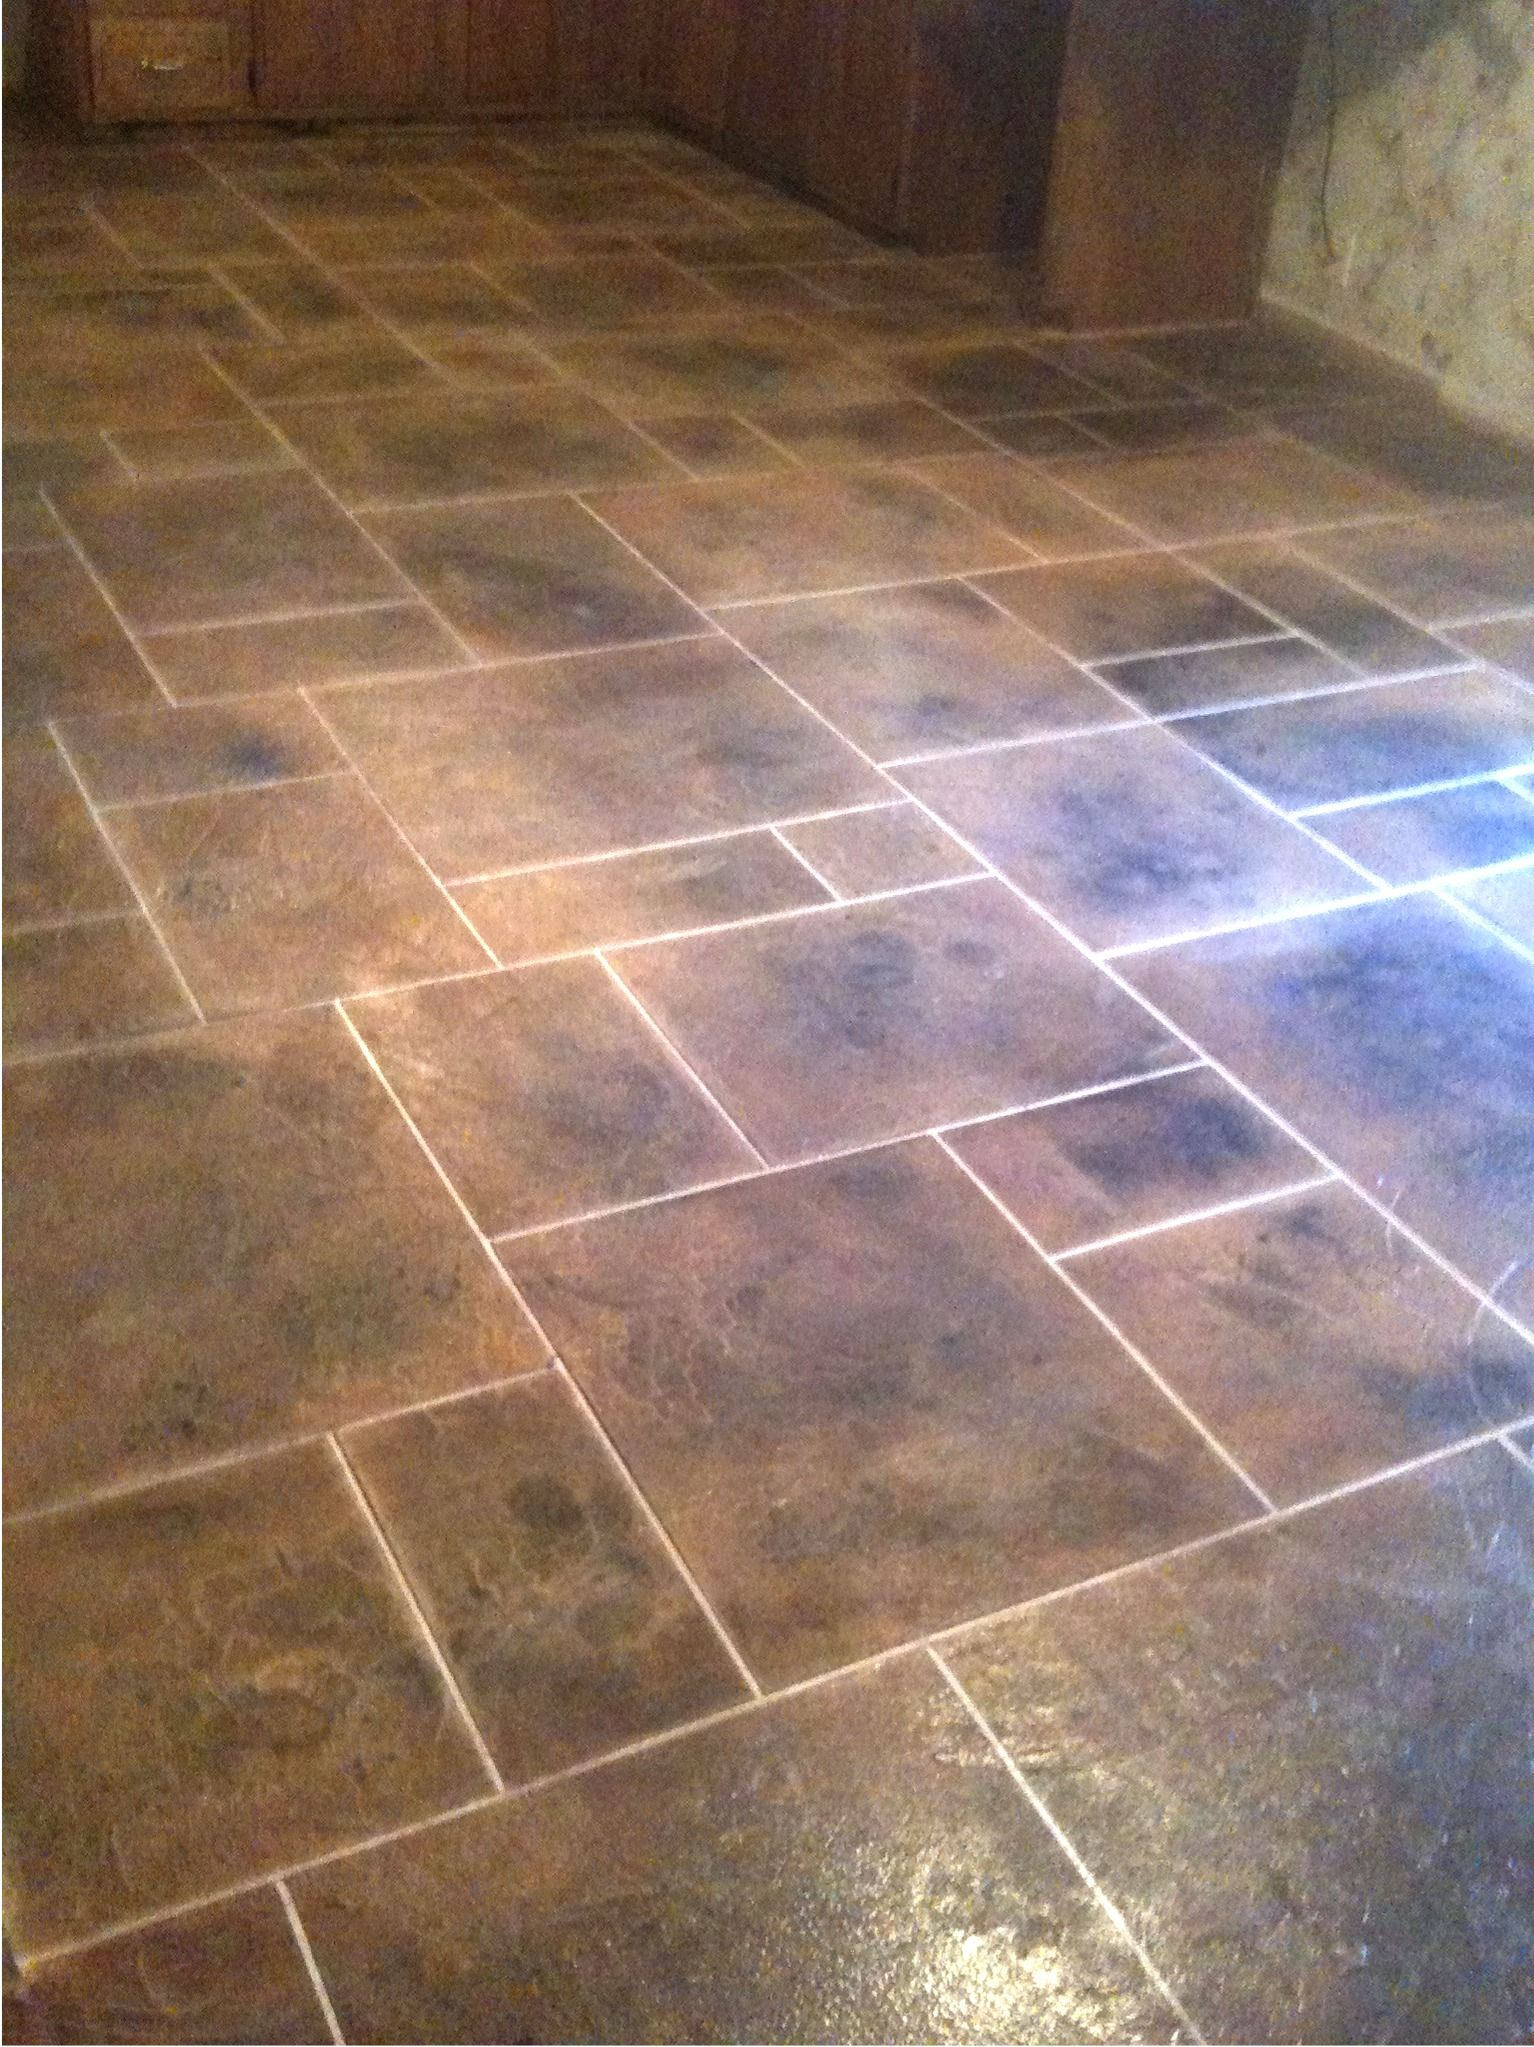 Kitchens Floor Tiles Kitchen Floor Tile Patterns Concrete Overlay Random Pattern